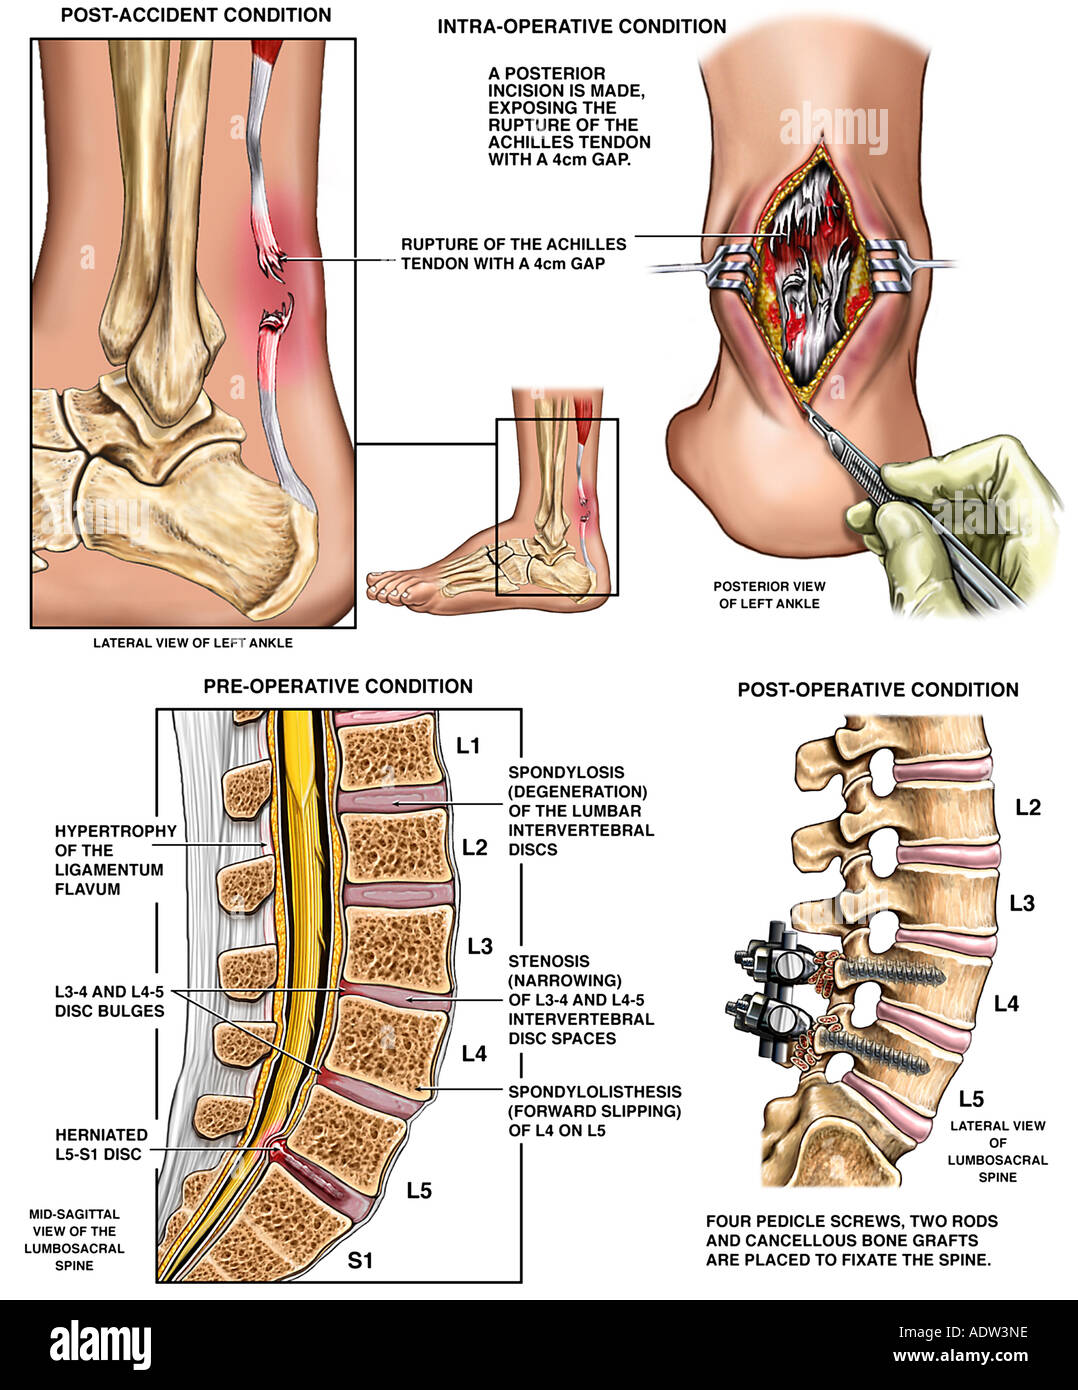 Rupture Of The Achilles Tendon And Lower Back Injuries With Surgical